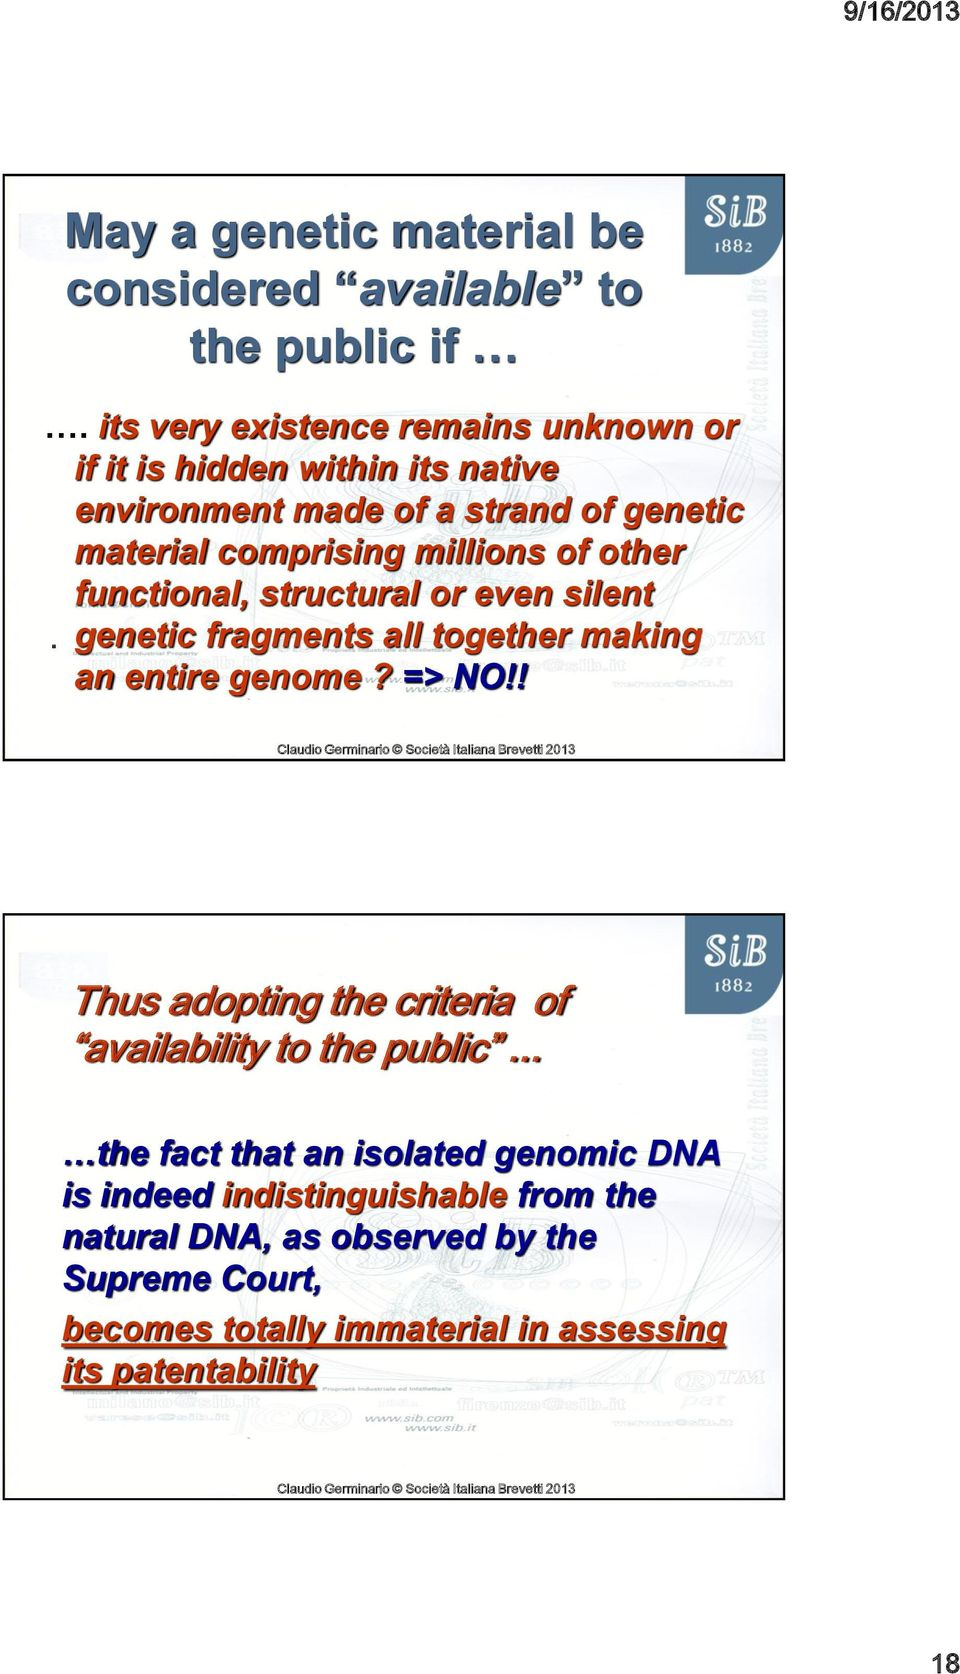 millions of other functional, structural or even silent. genetic fragments all together making an entire genome? => NO!